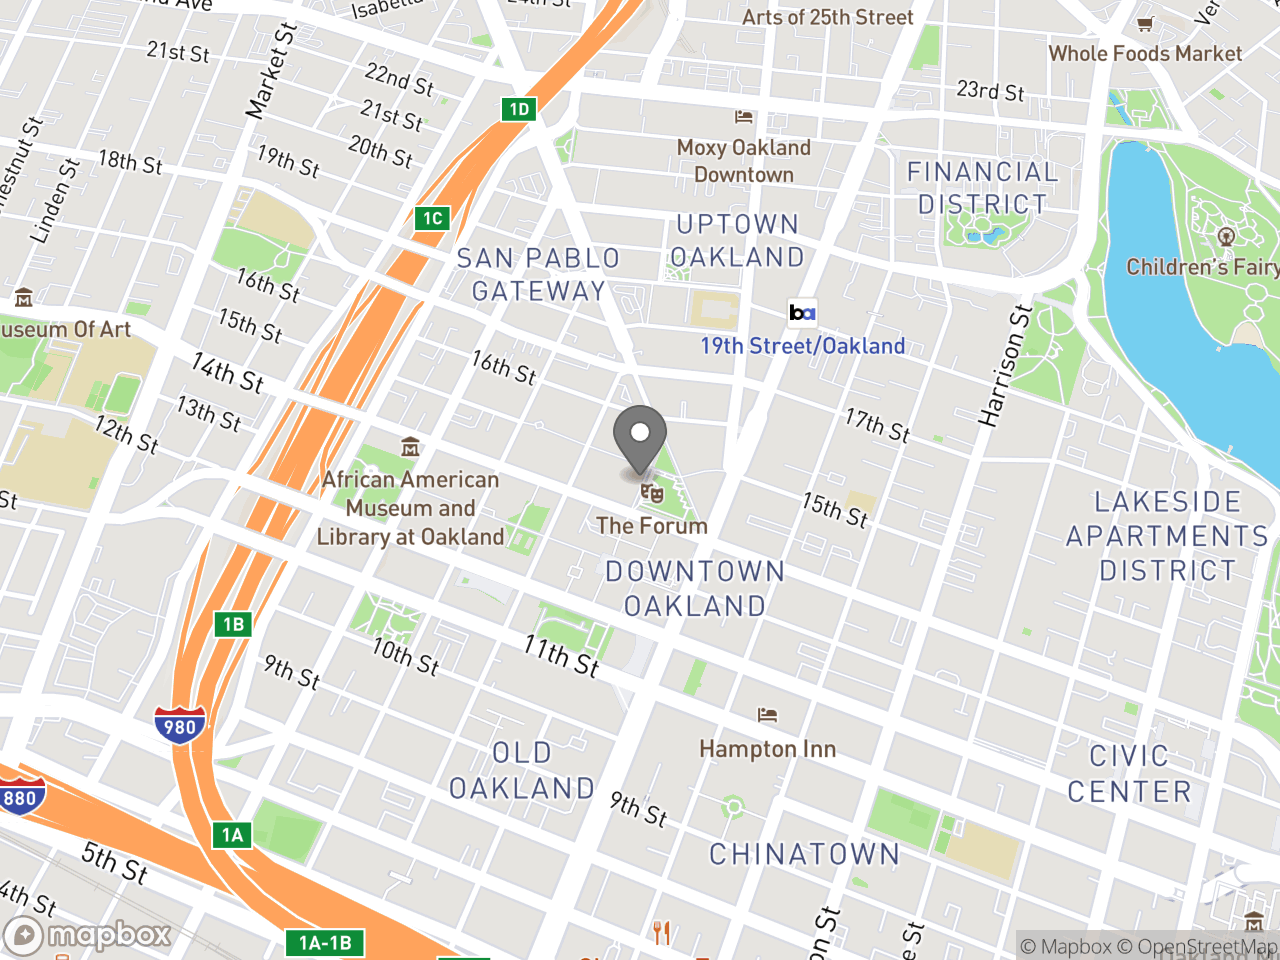 Map location for June 19, 2019 Planning Commission Meeting, located at 1 Frank H Ogawa Plaza in Oakland, CA 94612